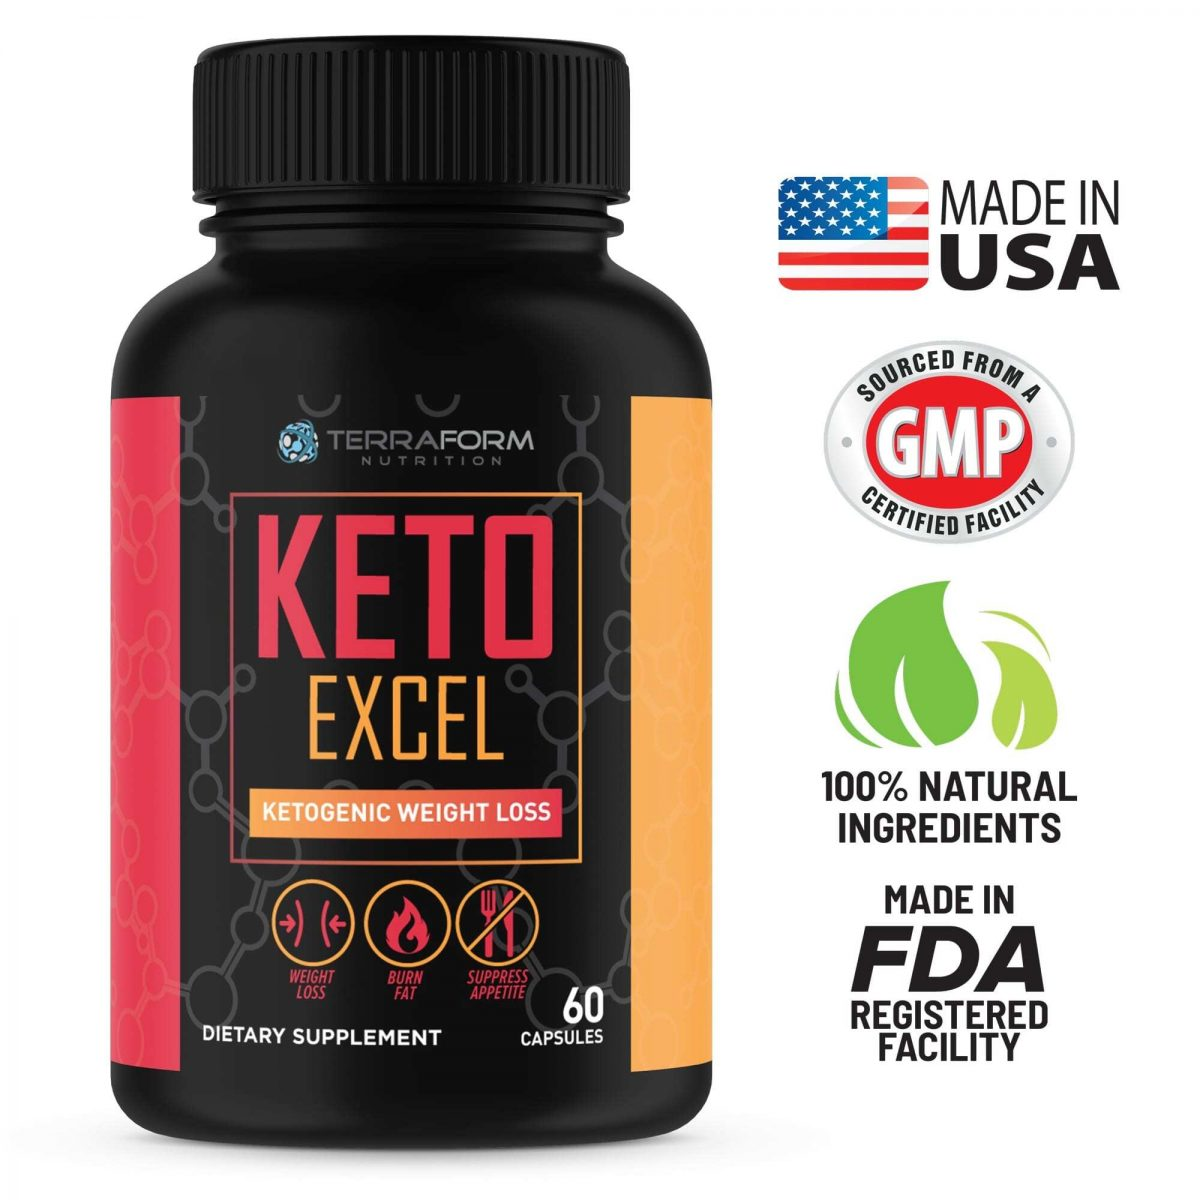 Keto Excel – Powerful Keto Diet Weight Loss Supplement – 60 Capsules - TerraForm Nutrition-3359